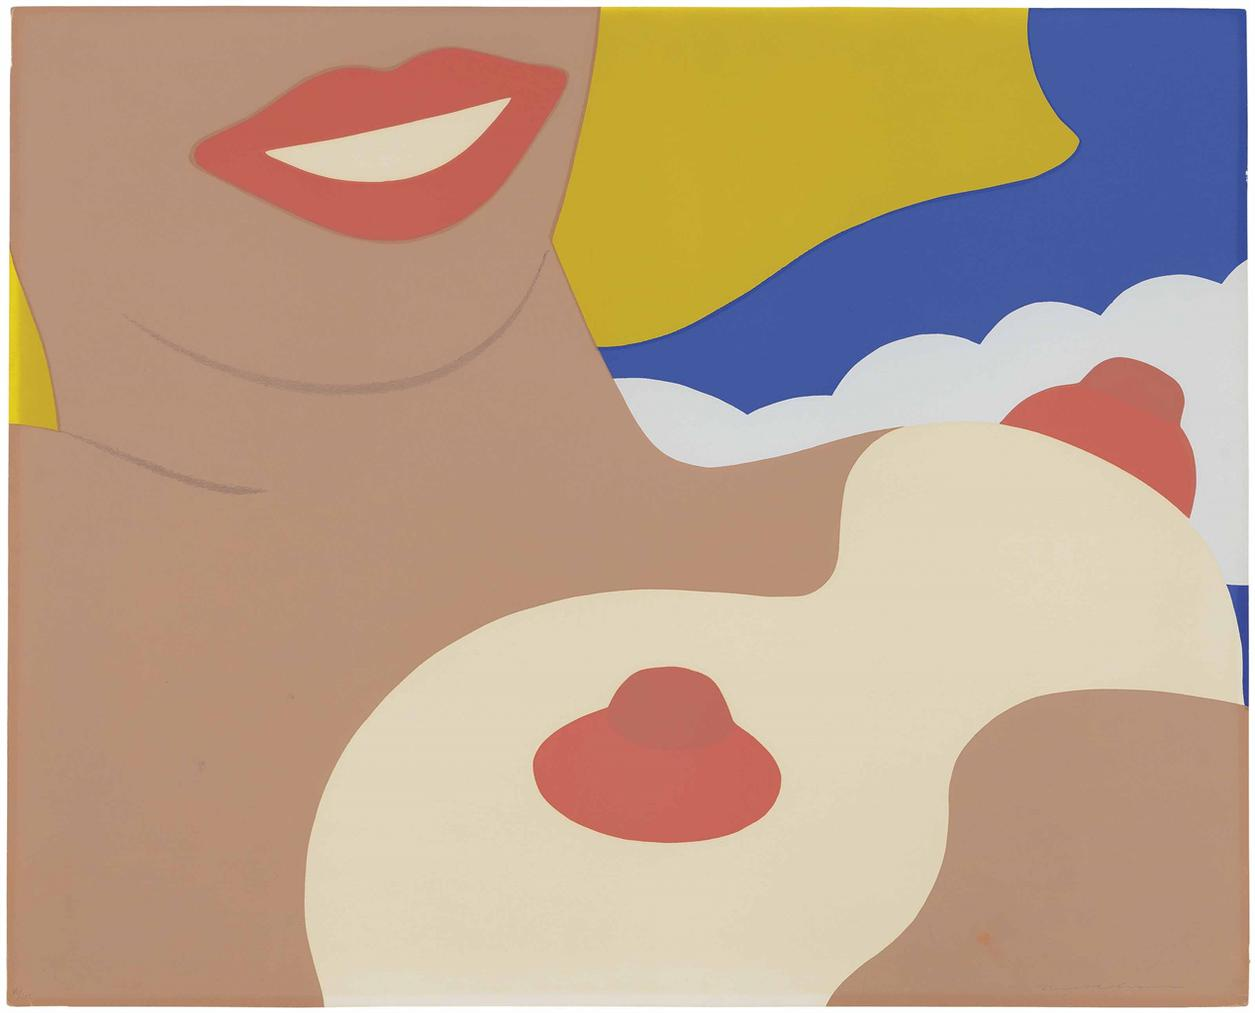 Tom Wesselmann-Nude, From: 11 Pop Artists, Volume Ii-1971